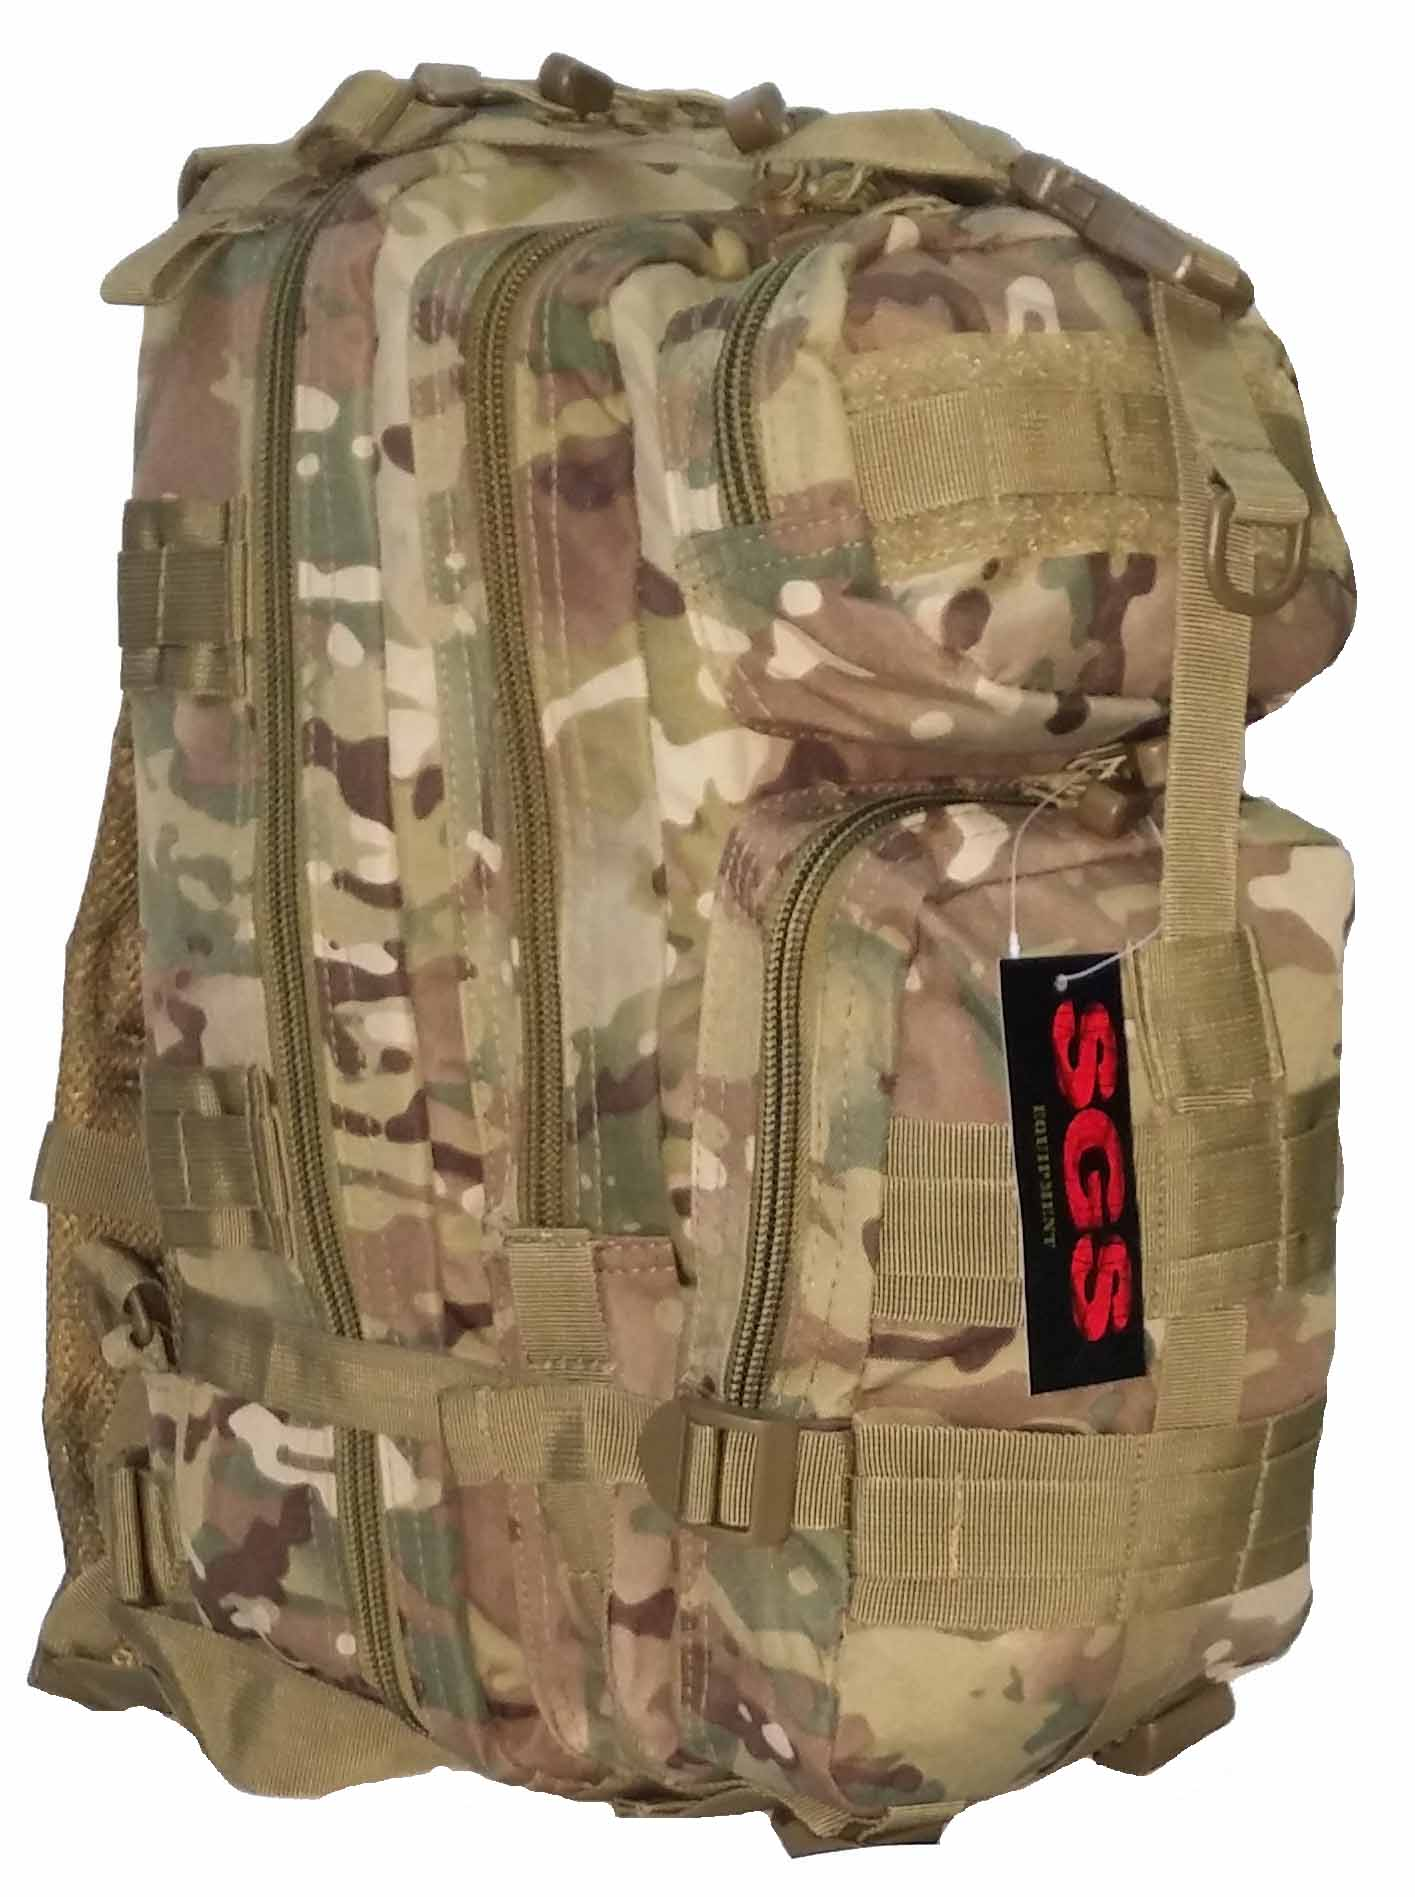 SGS Sac d'assaut tactique multicam